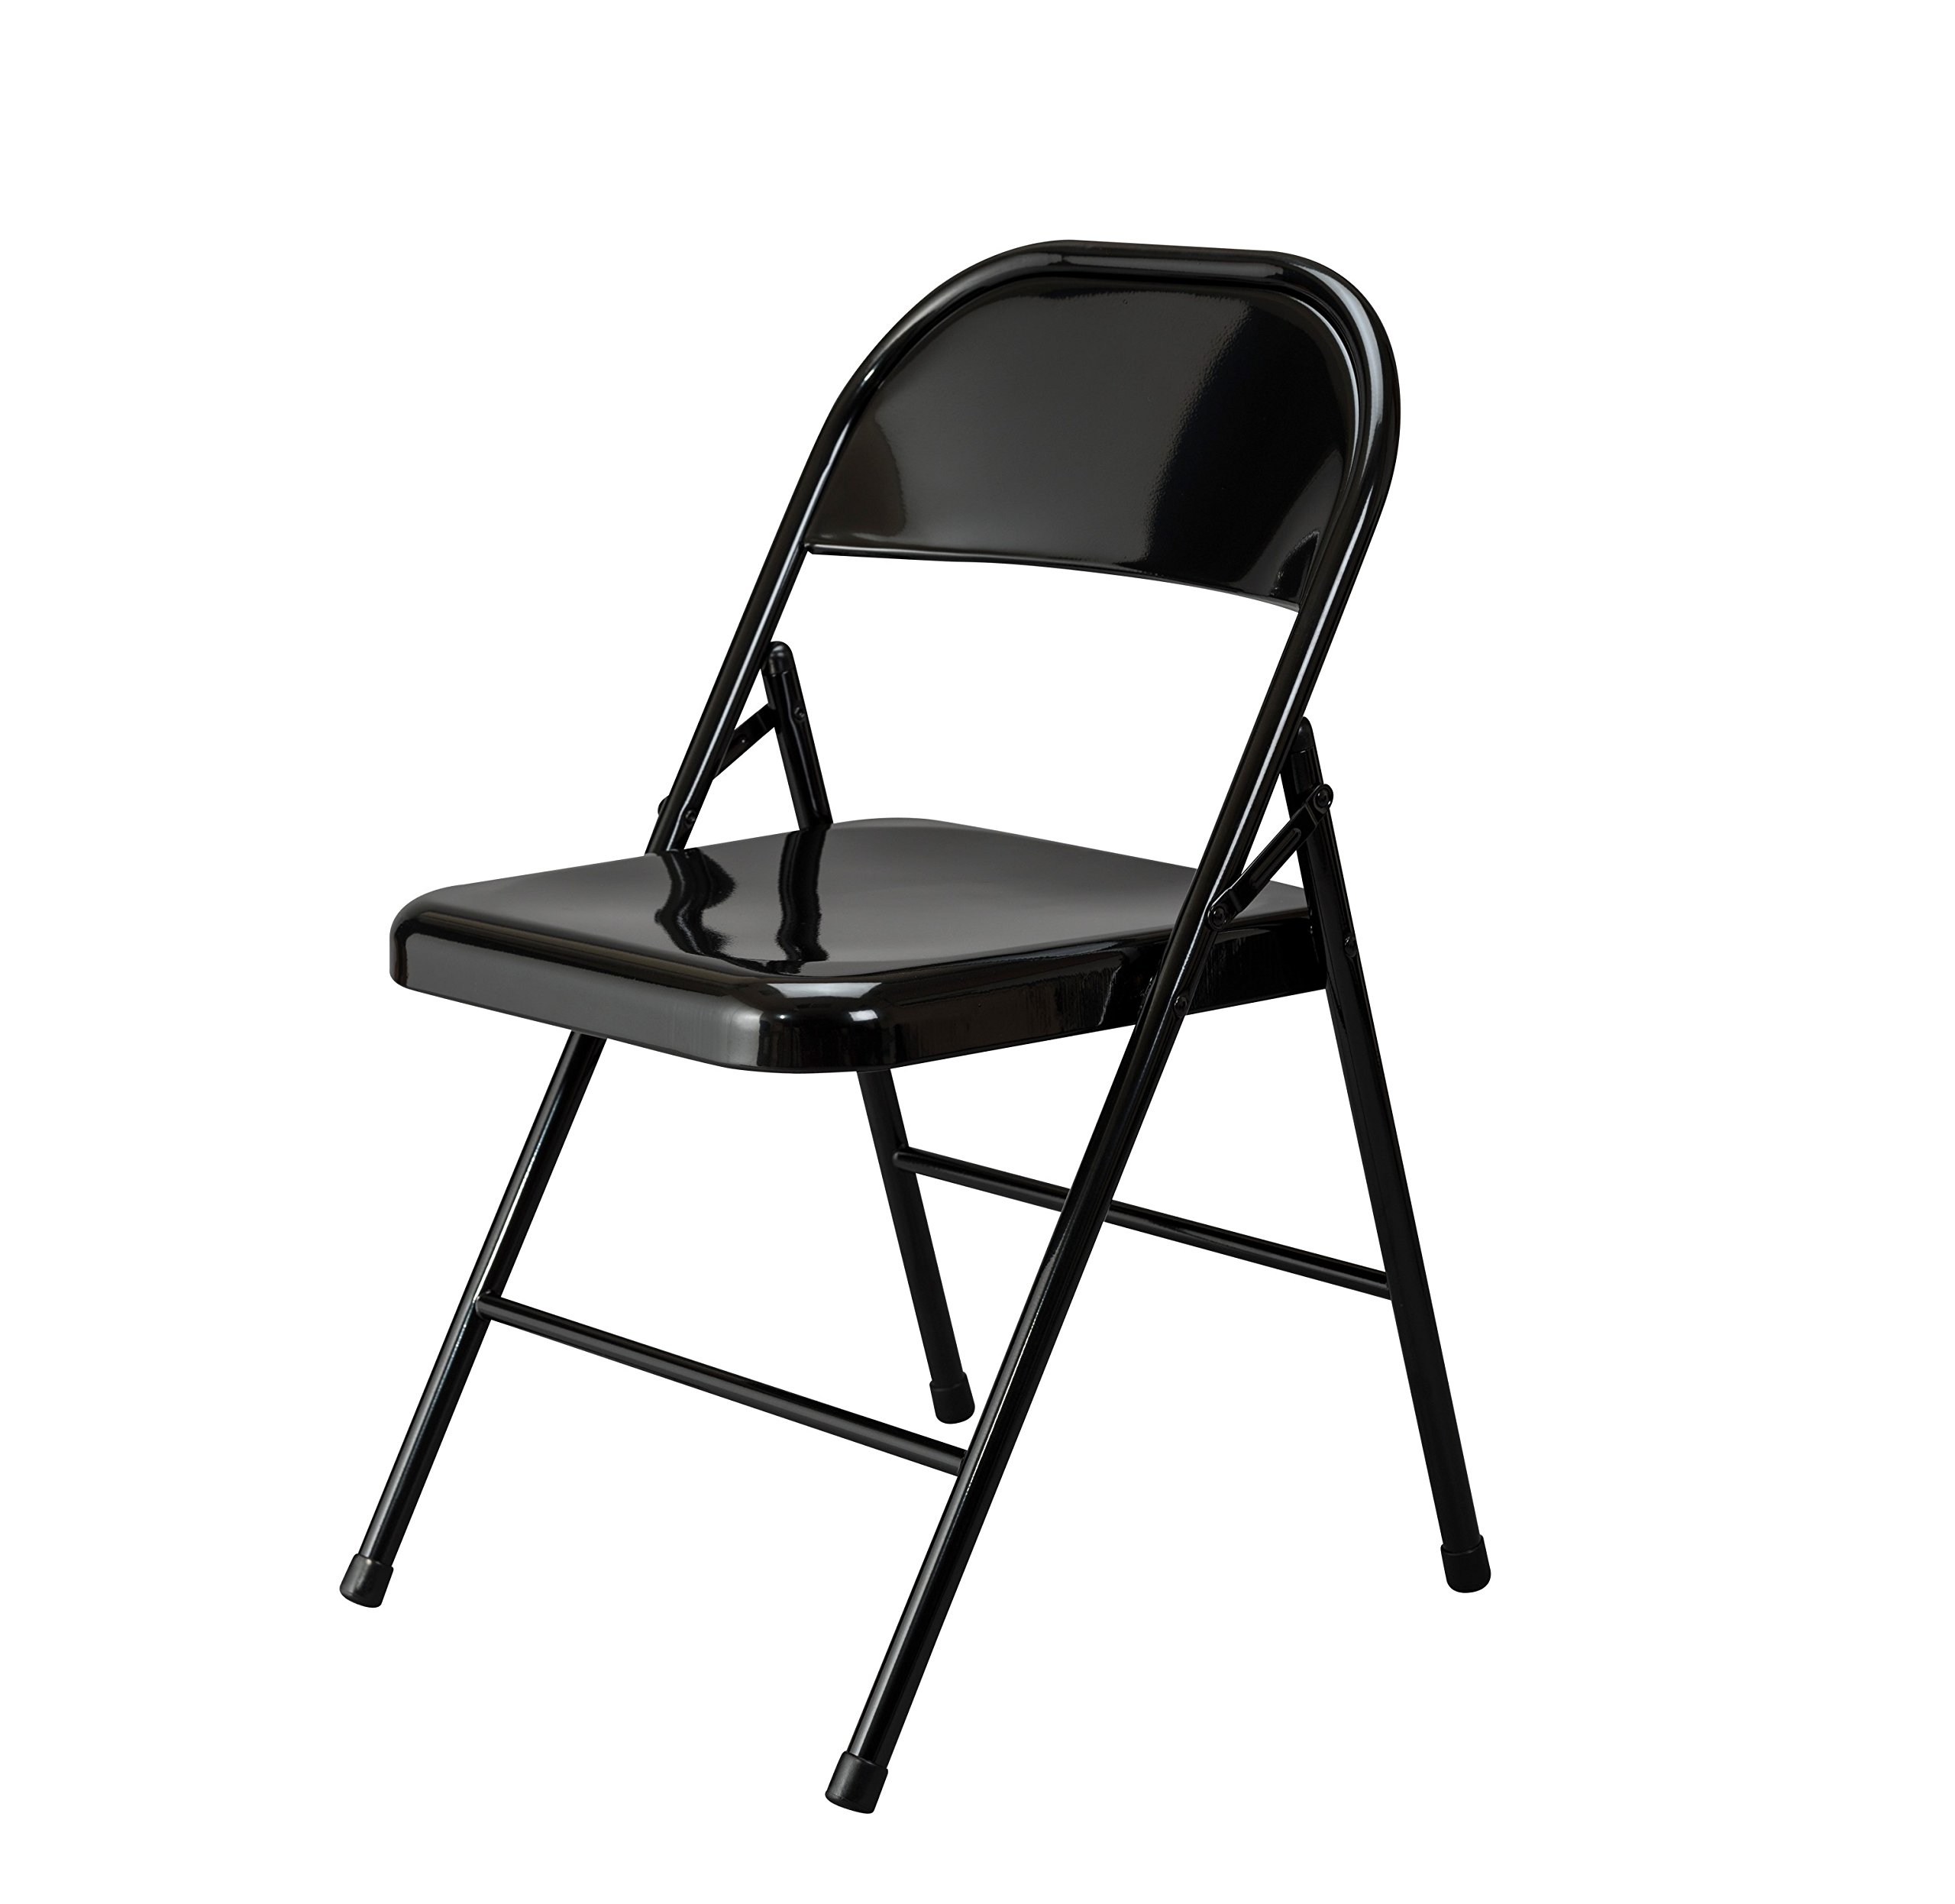 Essentials Multipurpose Metal Folding Chair, Black - 4 Pack by OFM